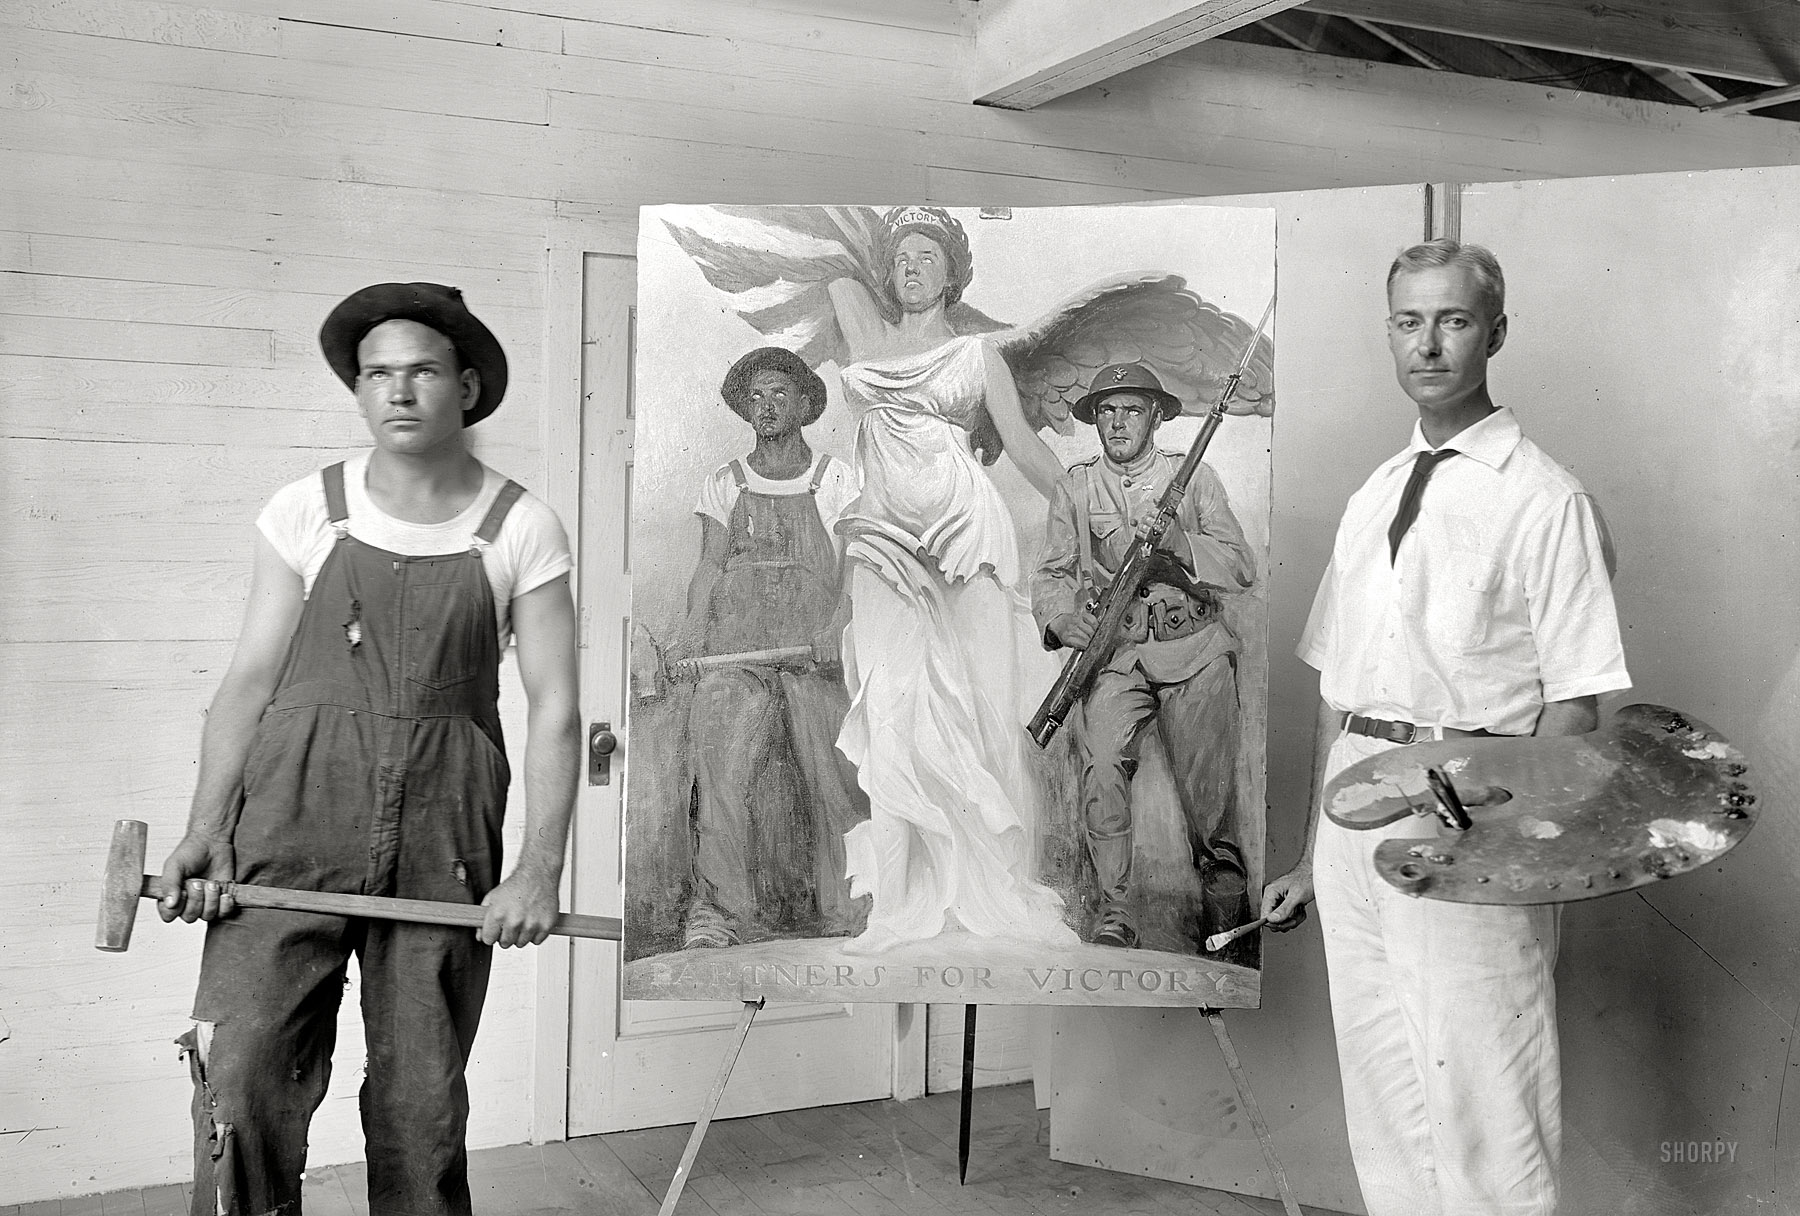 Patriotic art was commissioned to inspire workers to join wartime efforts, including this like this awesome painting by Gerrit A. Beneker – pictured here with his model.